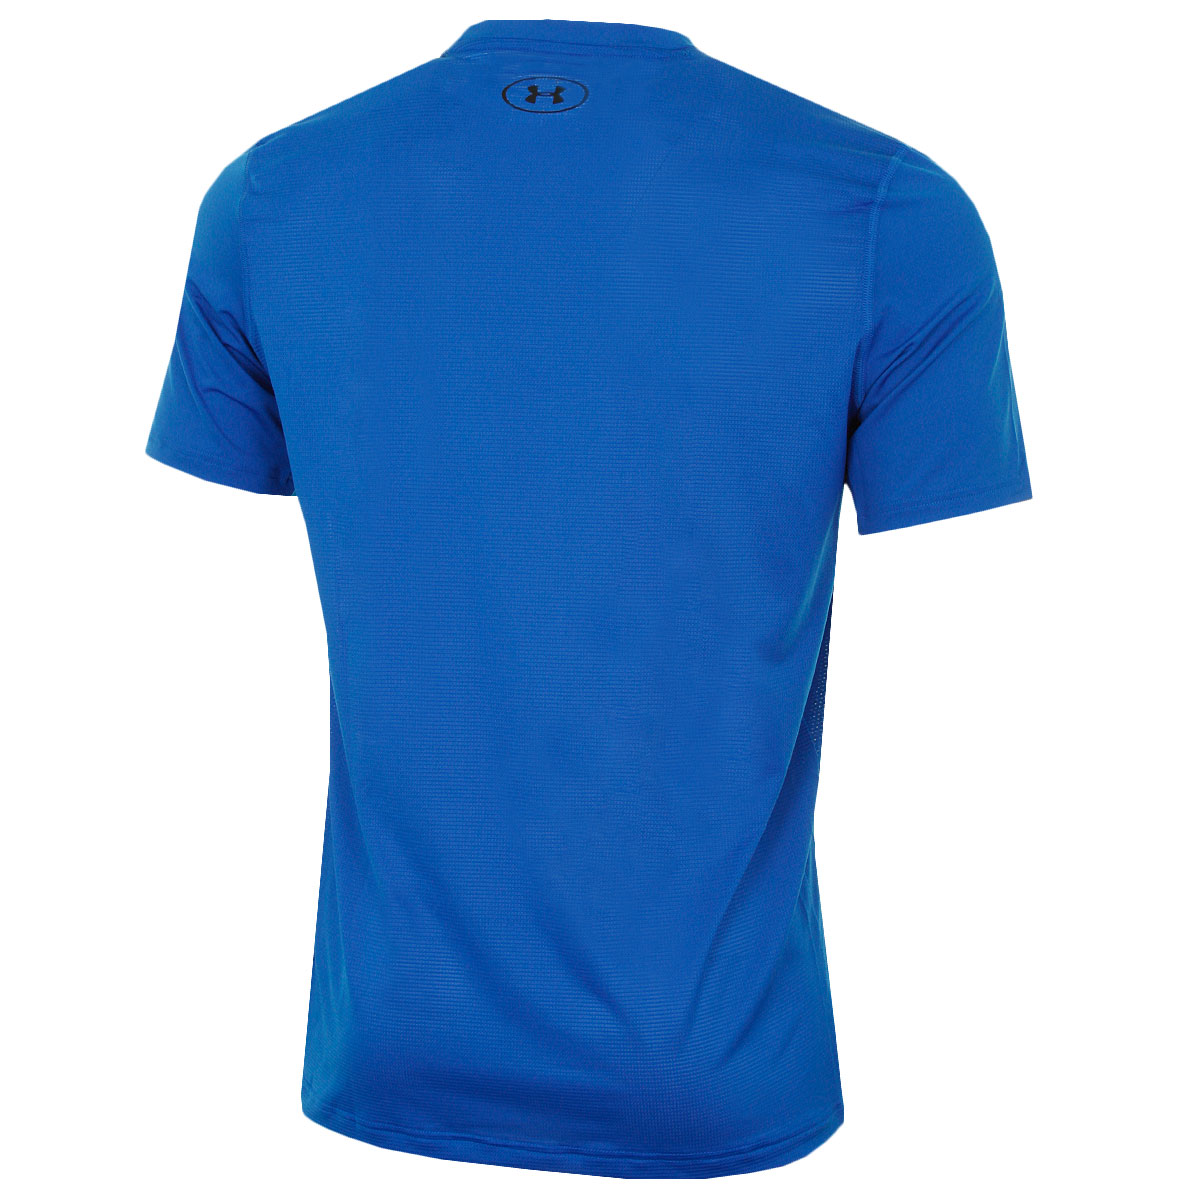 4d2070b8 Under Armour Mens UA Raid Graphic T Shirt Fitted Training Top 61 ...